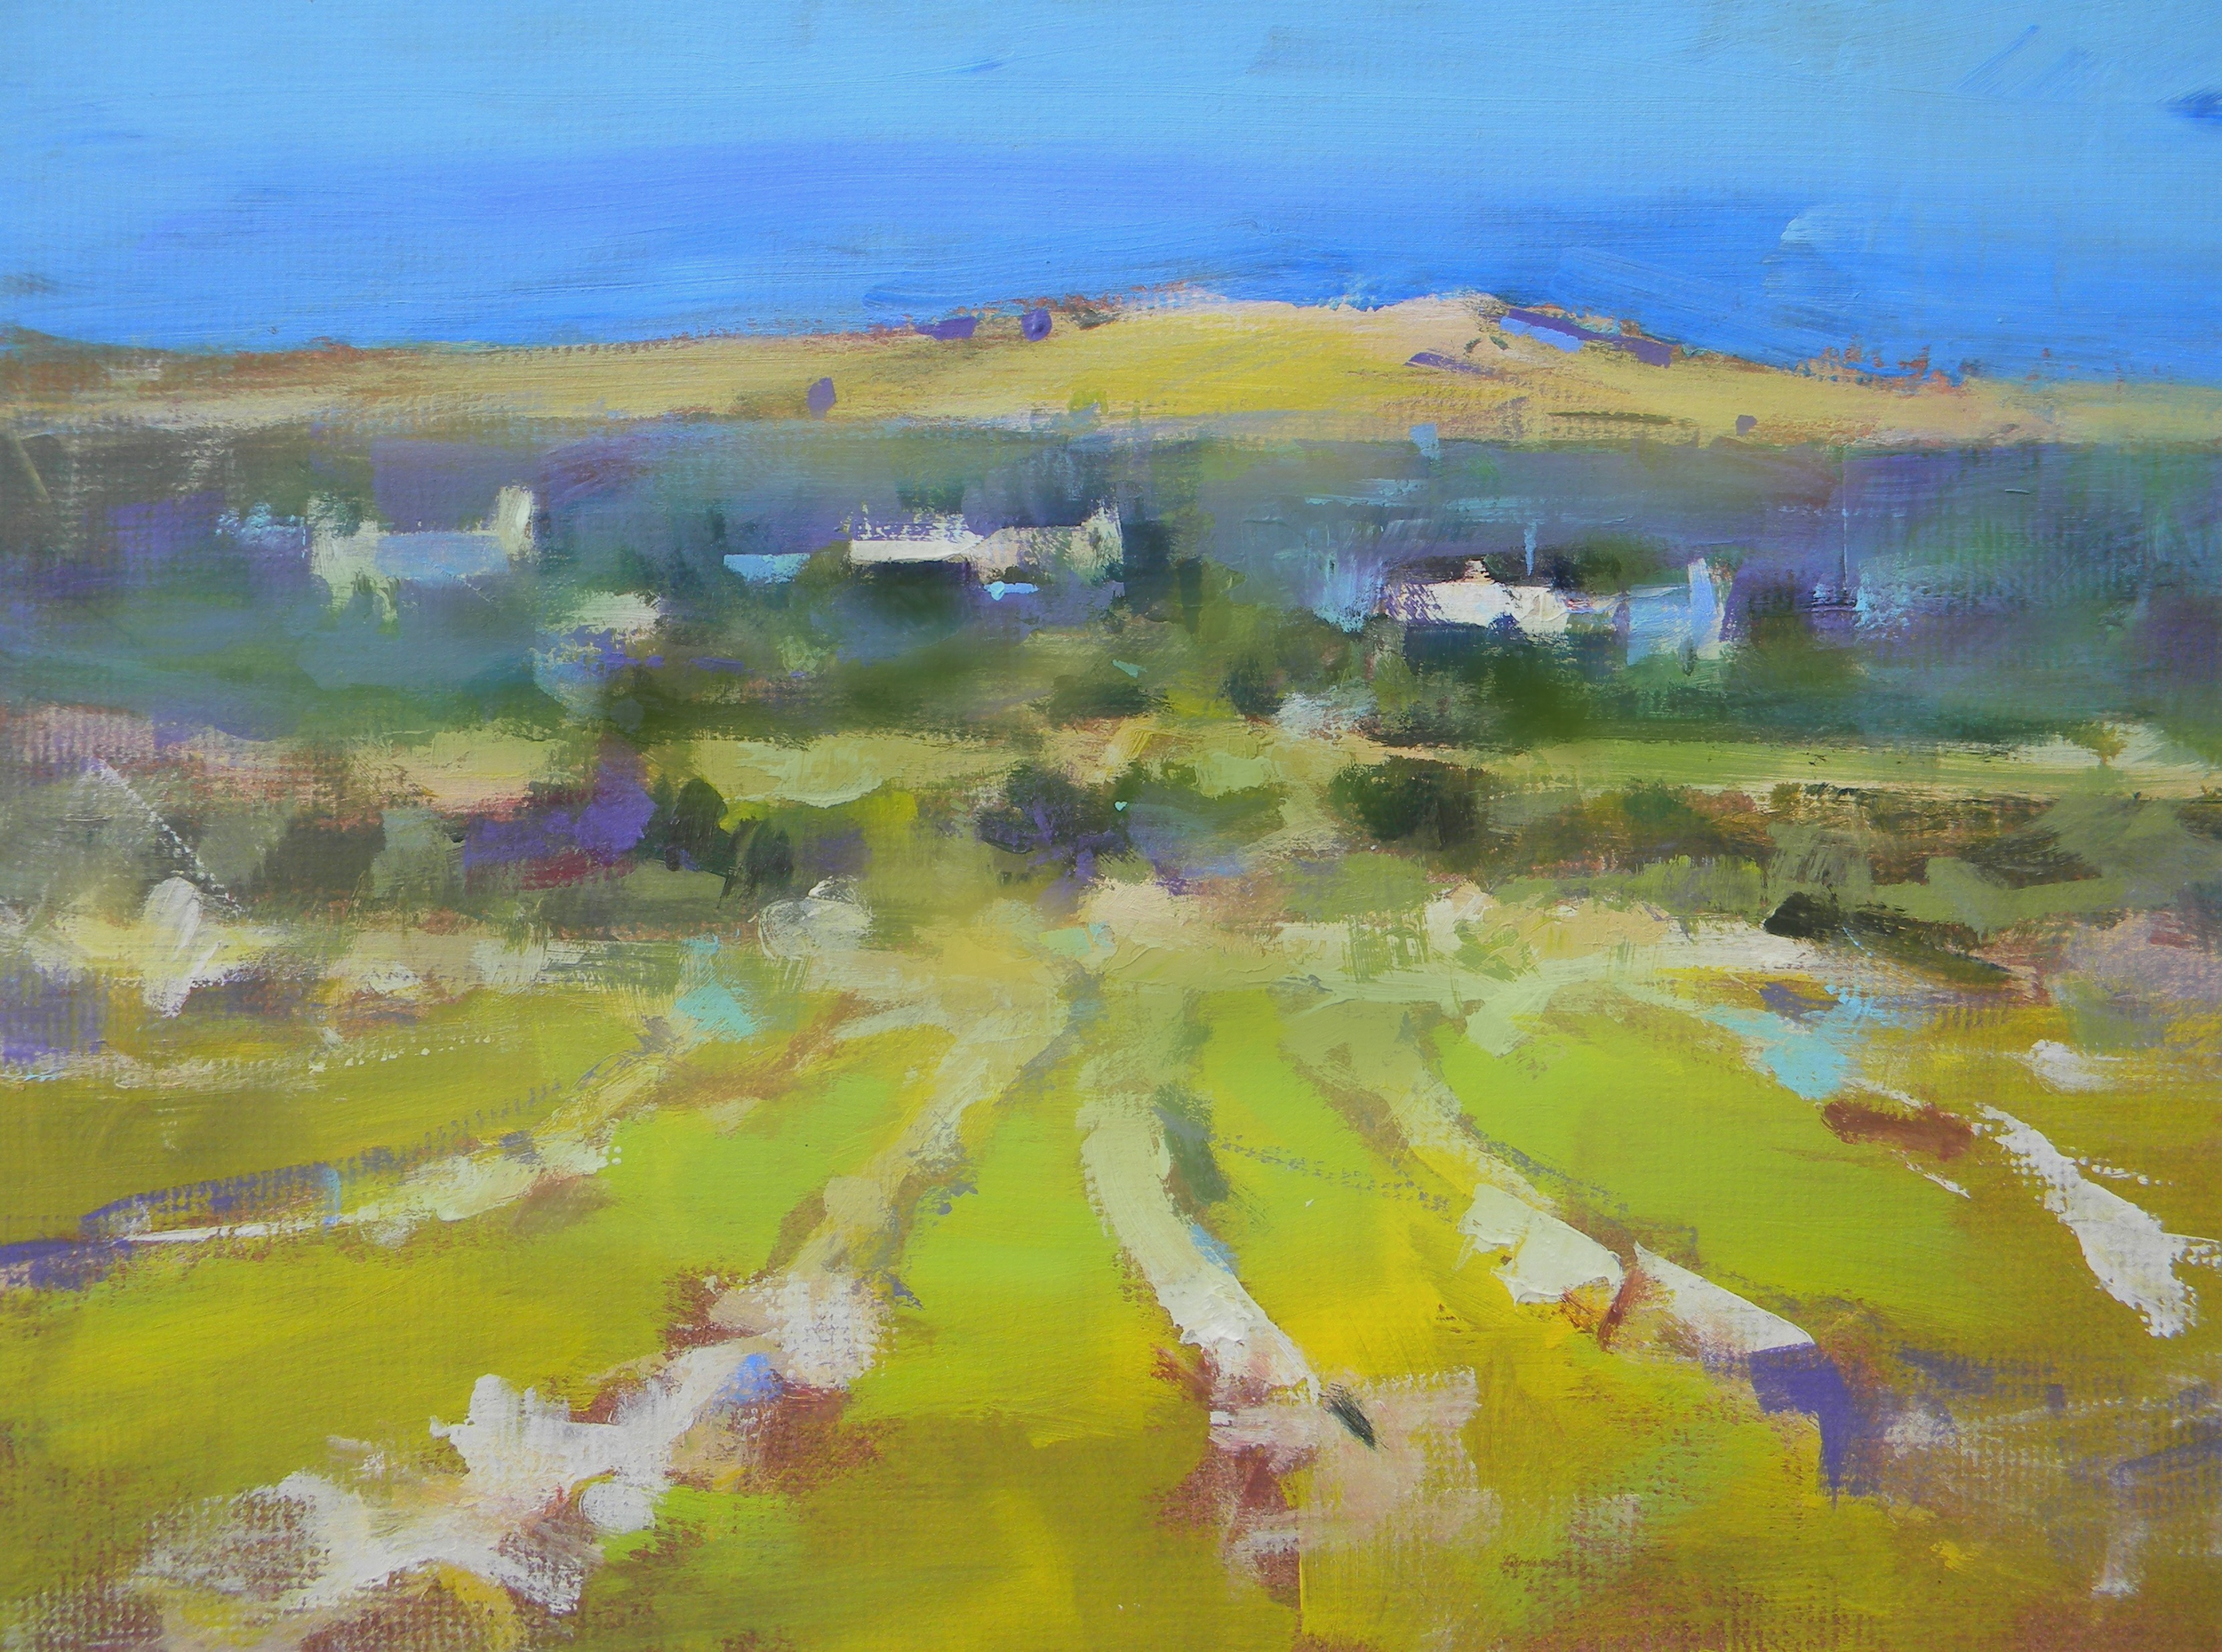 """Area of Abereiddy"" - Sold"